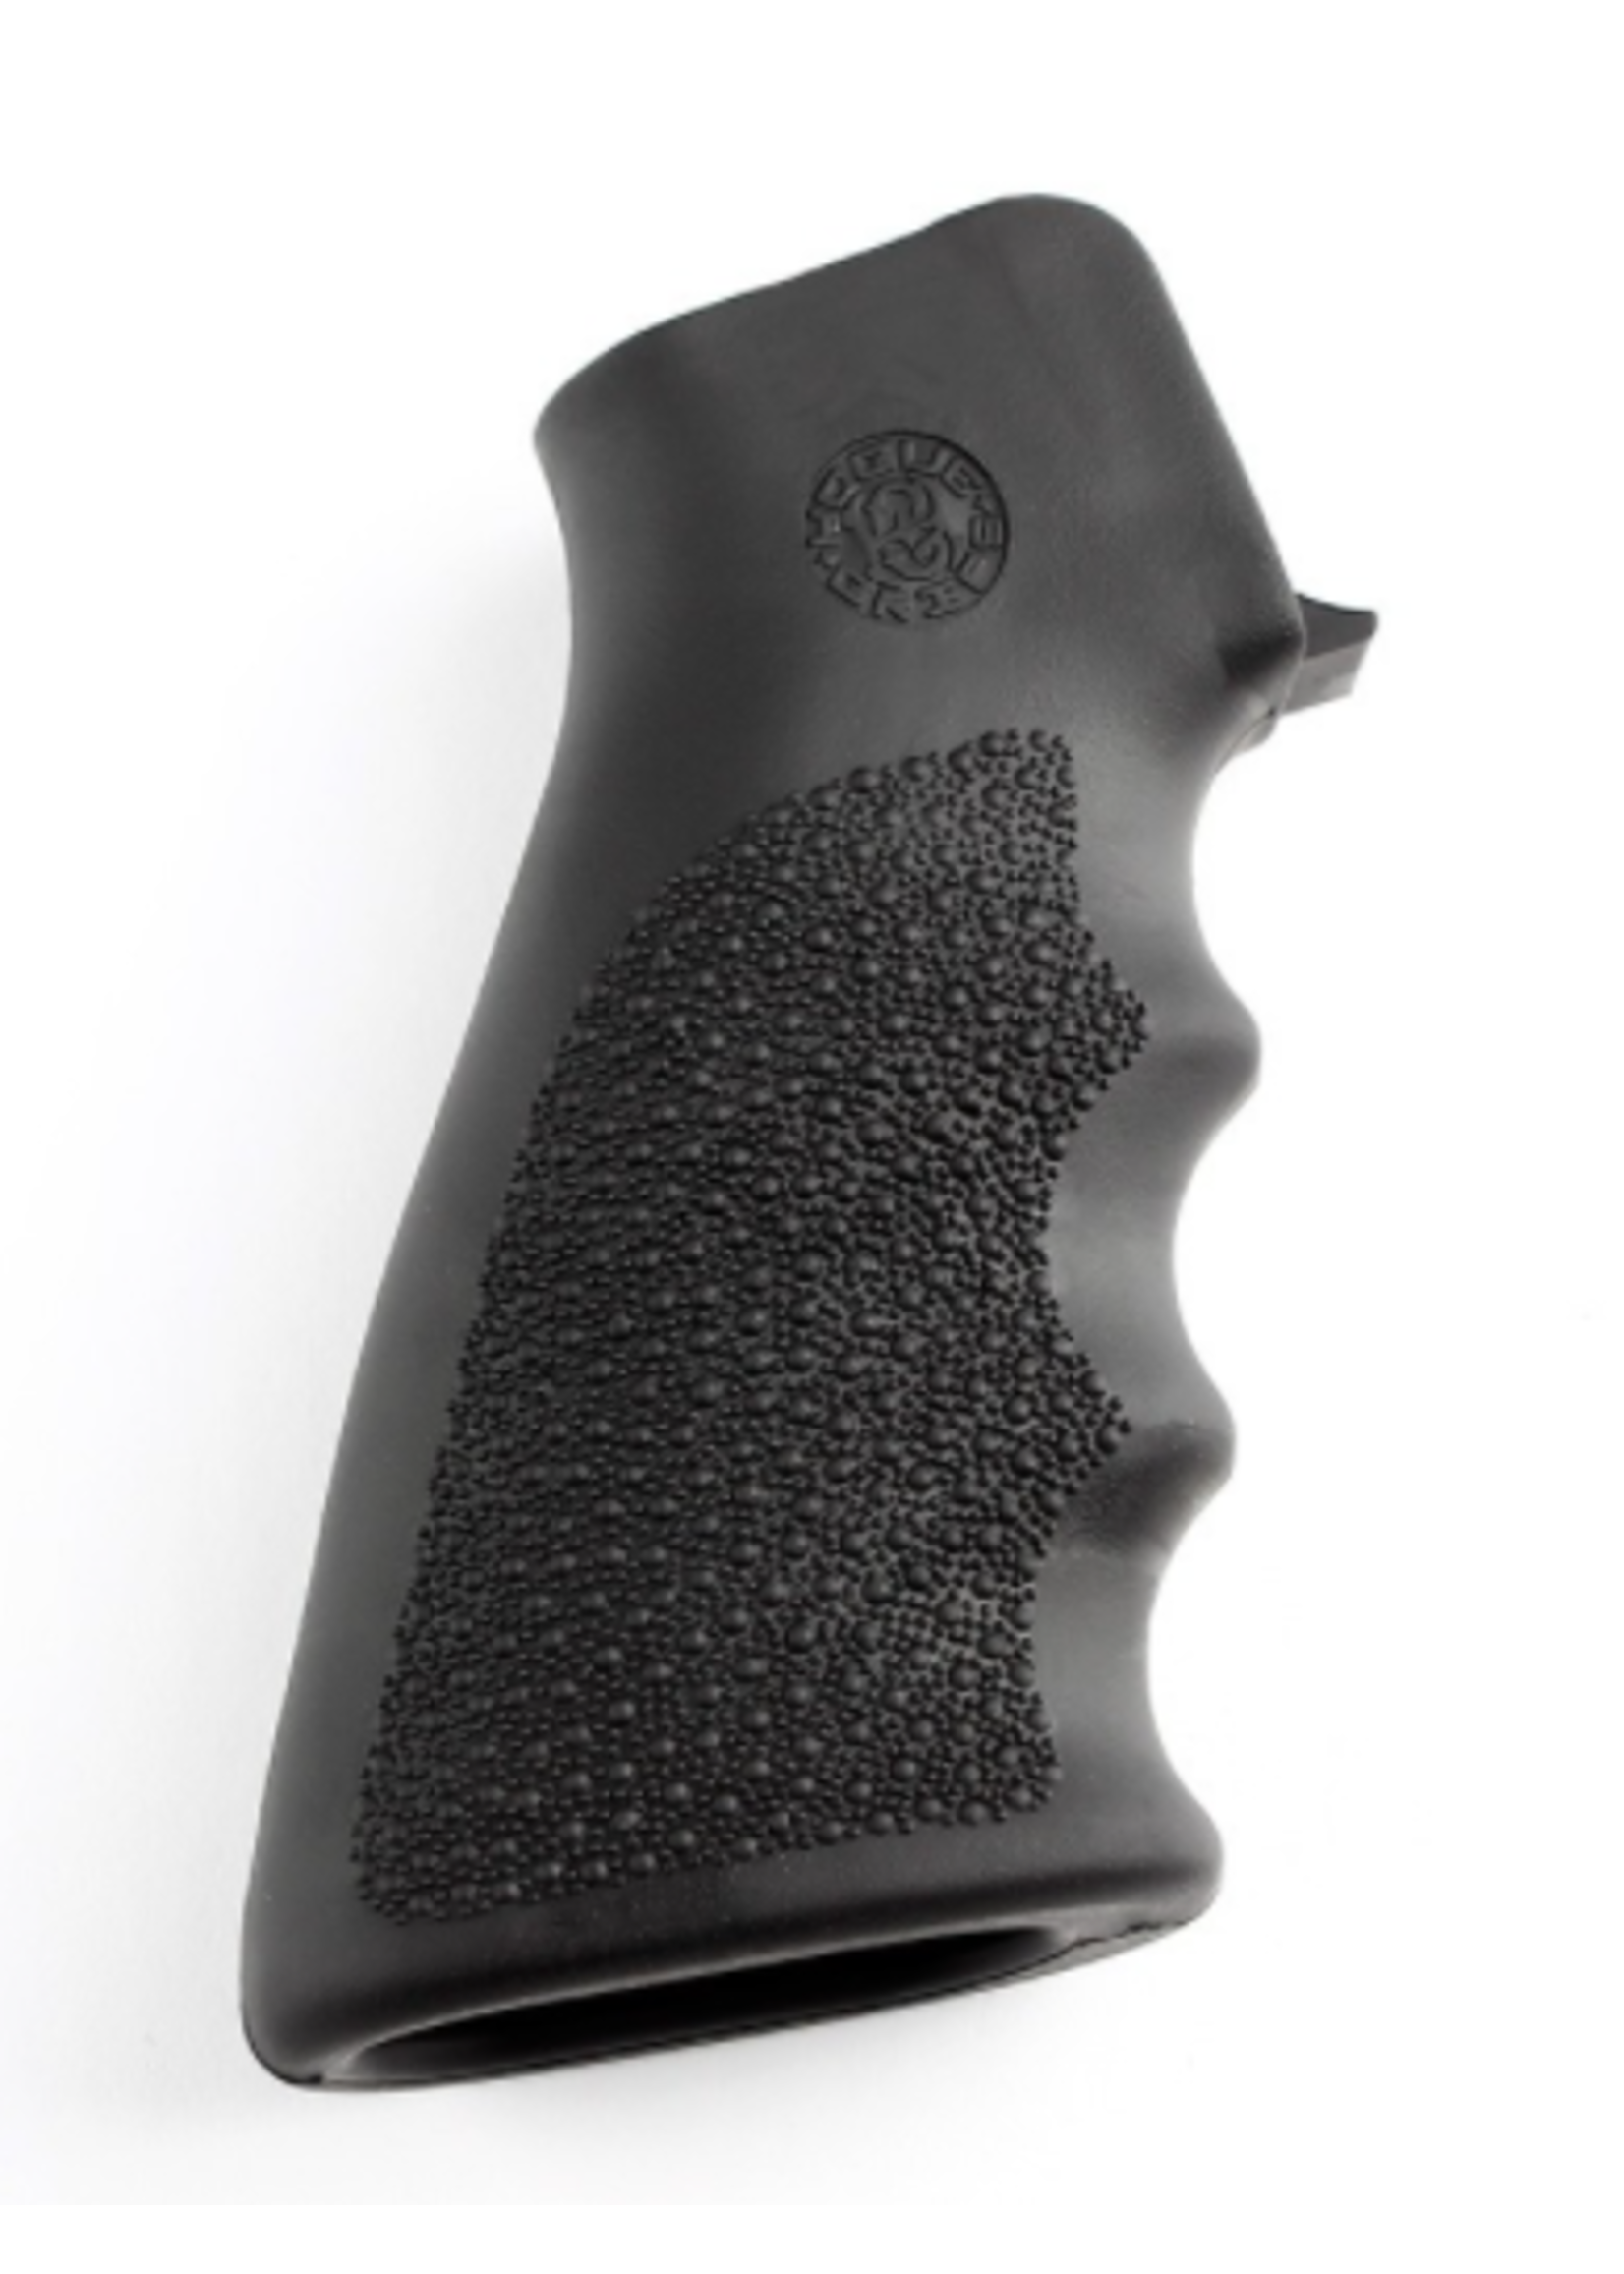 Hogue Hogue AR-15 / M16: OverMolded Rubber Grip with Finger Grooves - Black